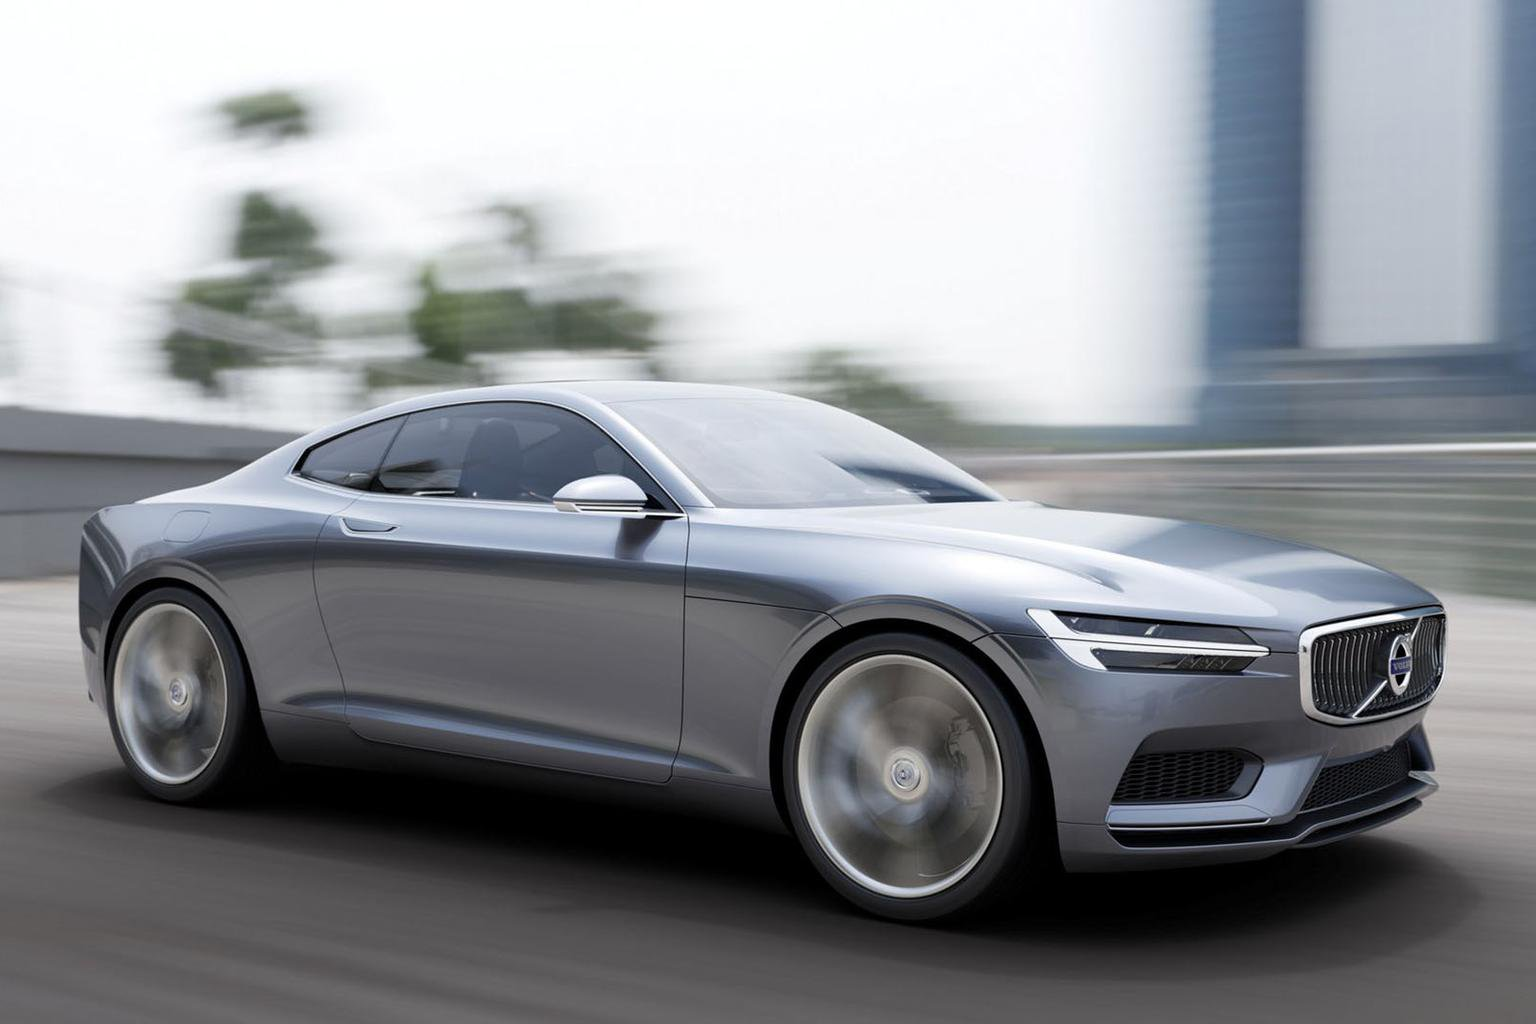 2016 Volvo S90 - latest details, specs, discounts and engine options